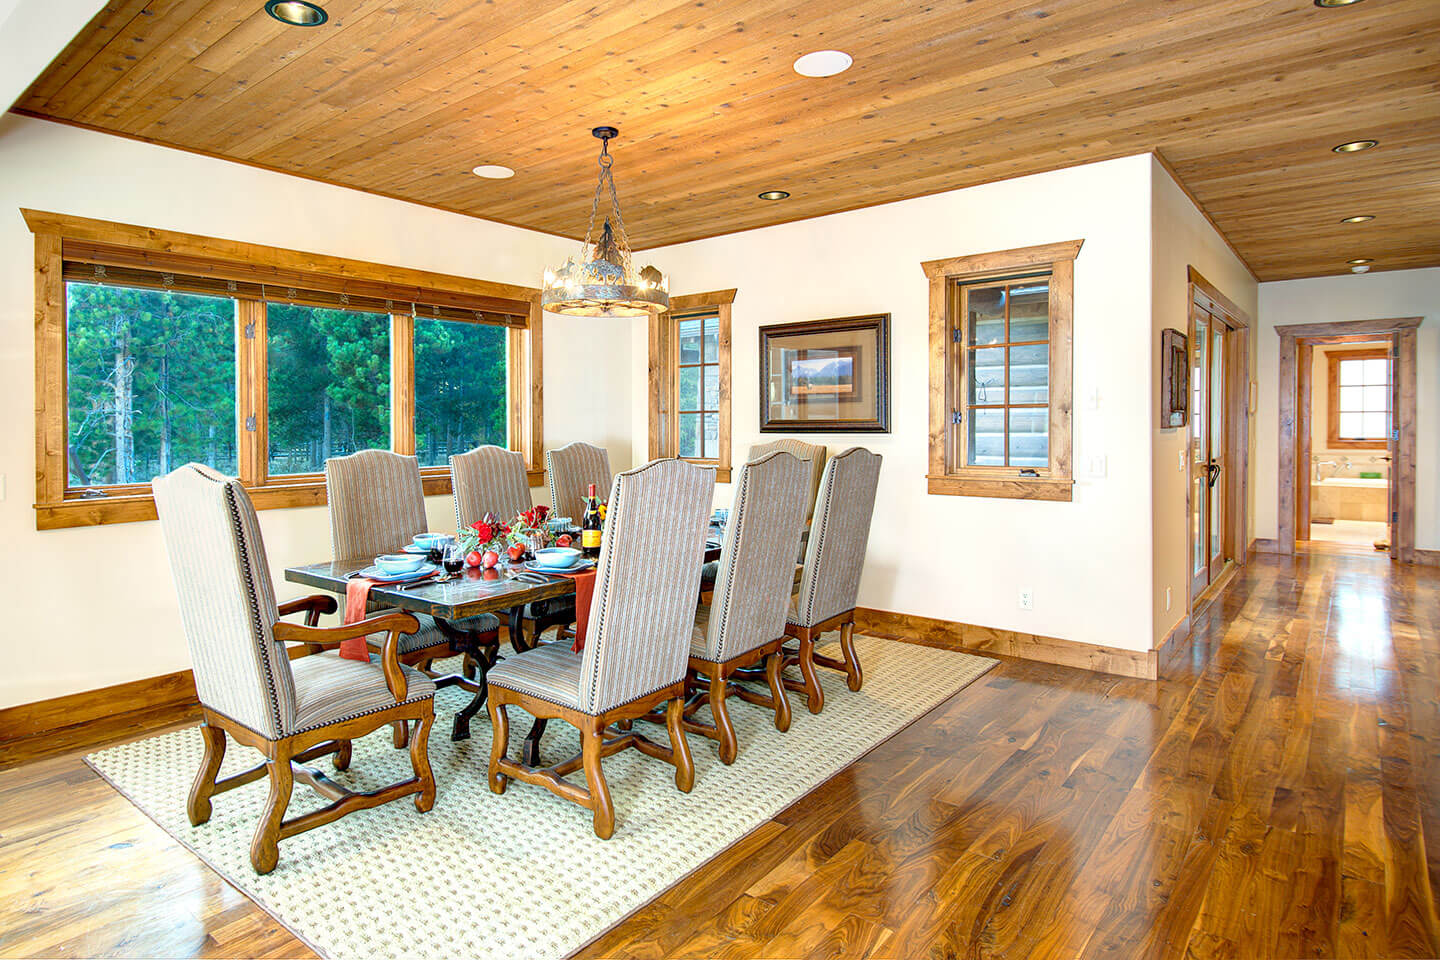 Dining room with wood floor and ceiling